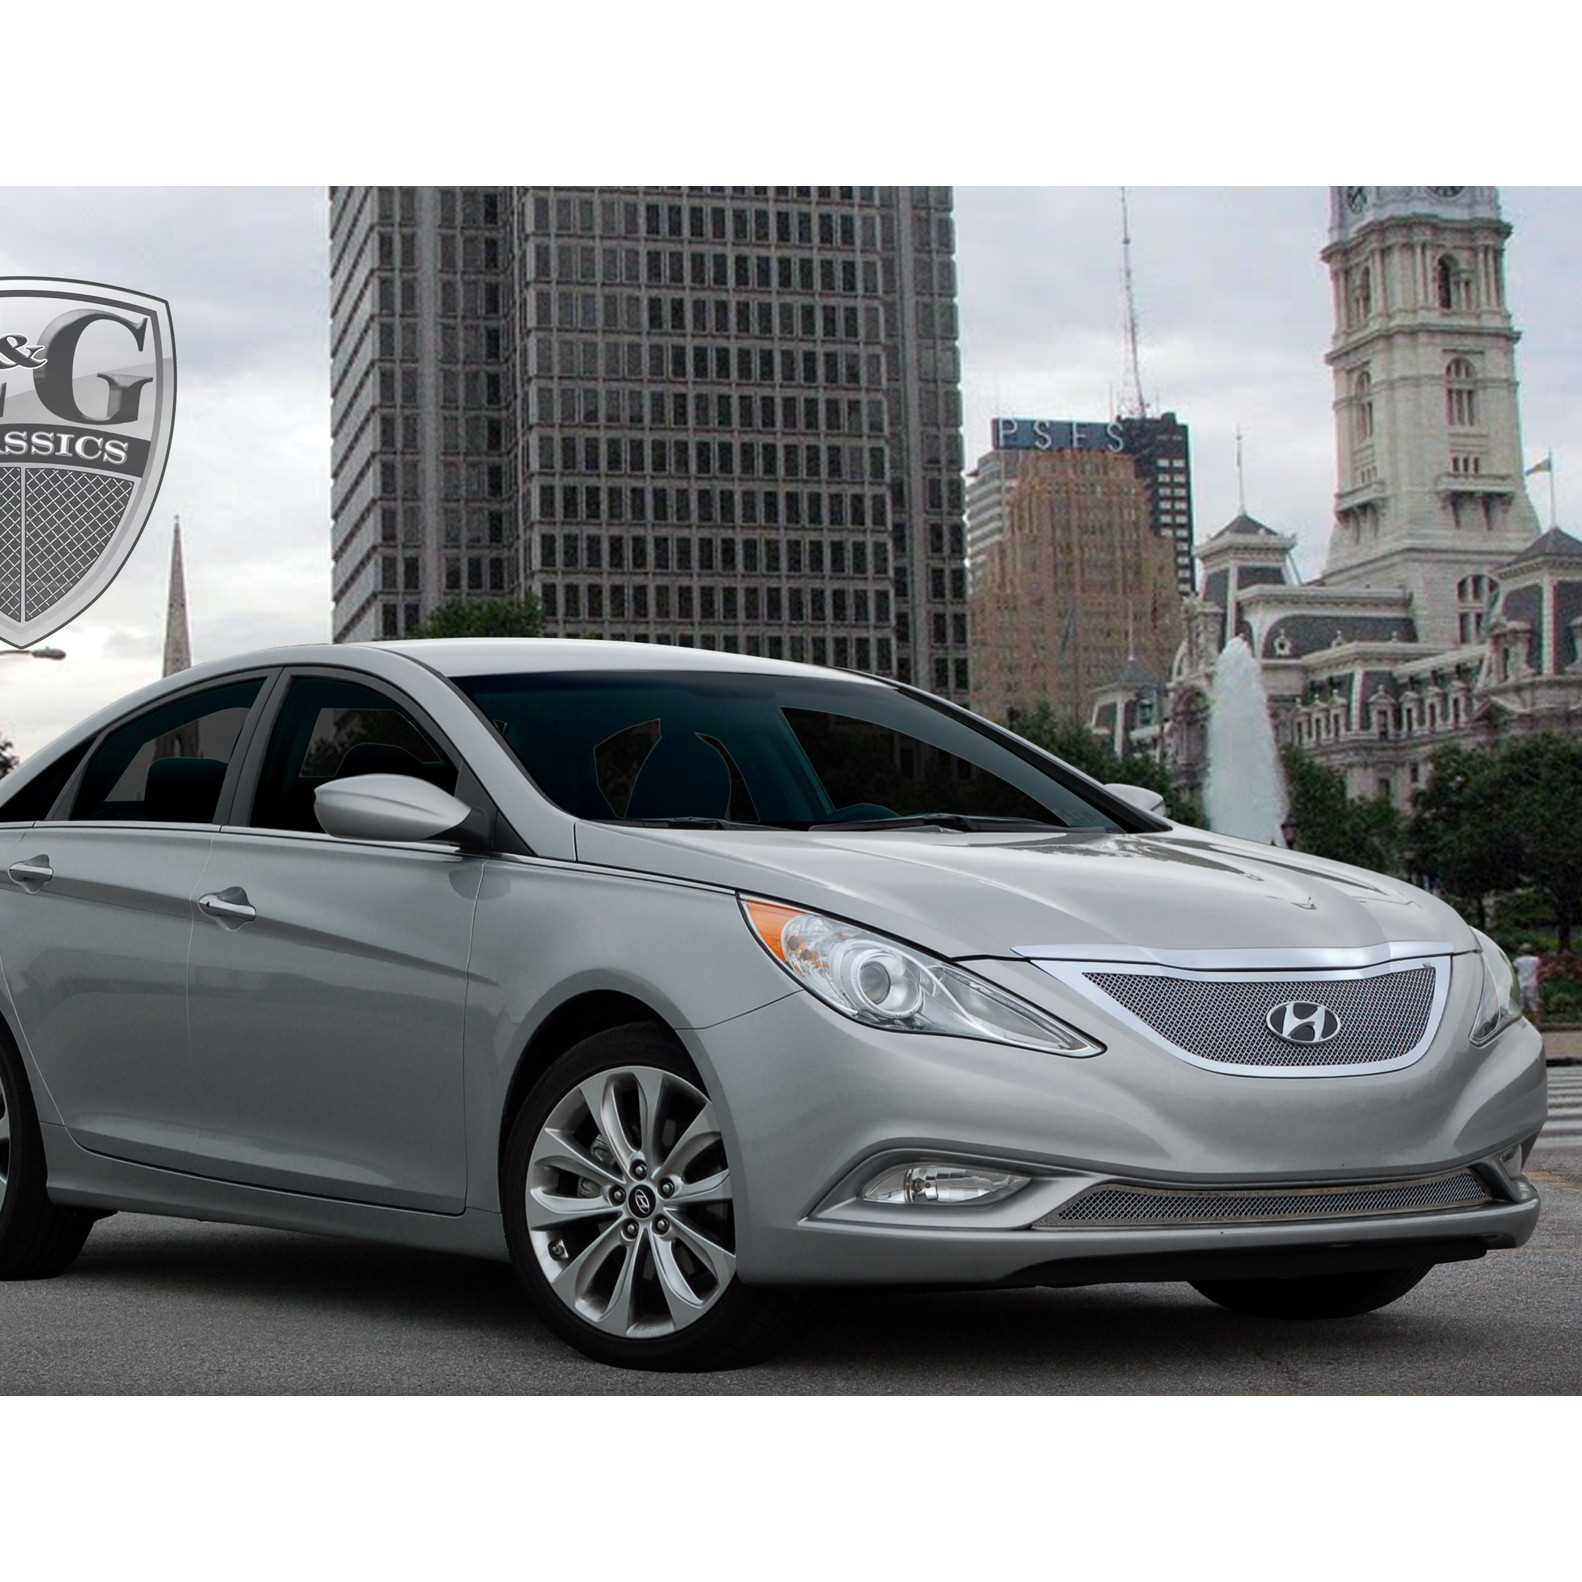 right view lot sale destruction en carfinder al auctions auto on online white hyundai in of copart azera certificate mobile